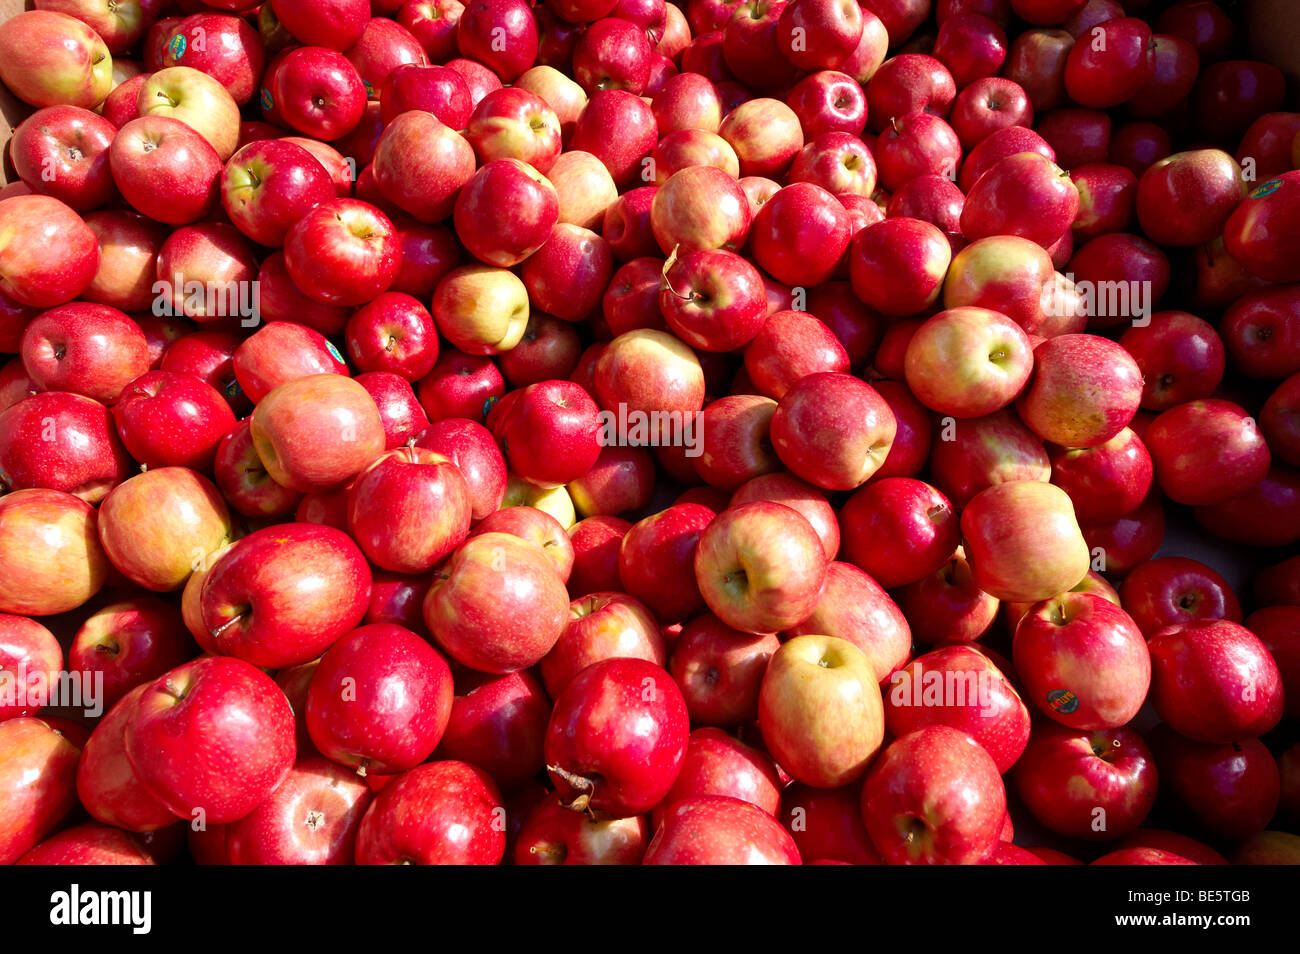 Fresh apples at market - Stock Image